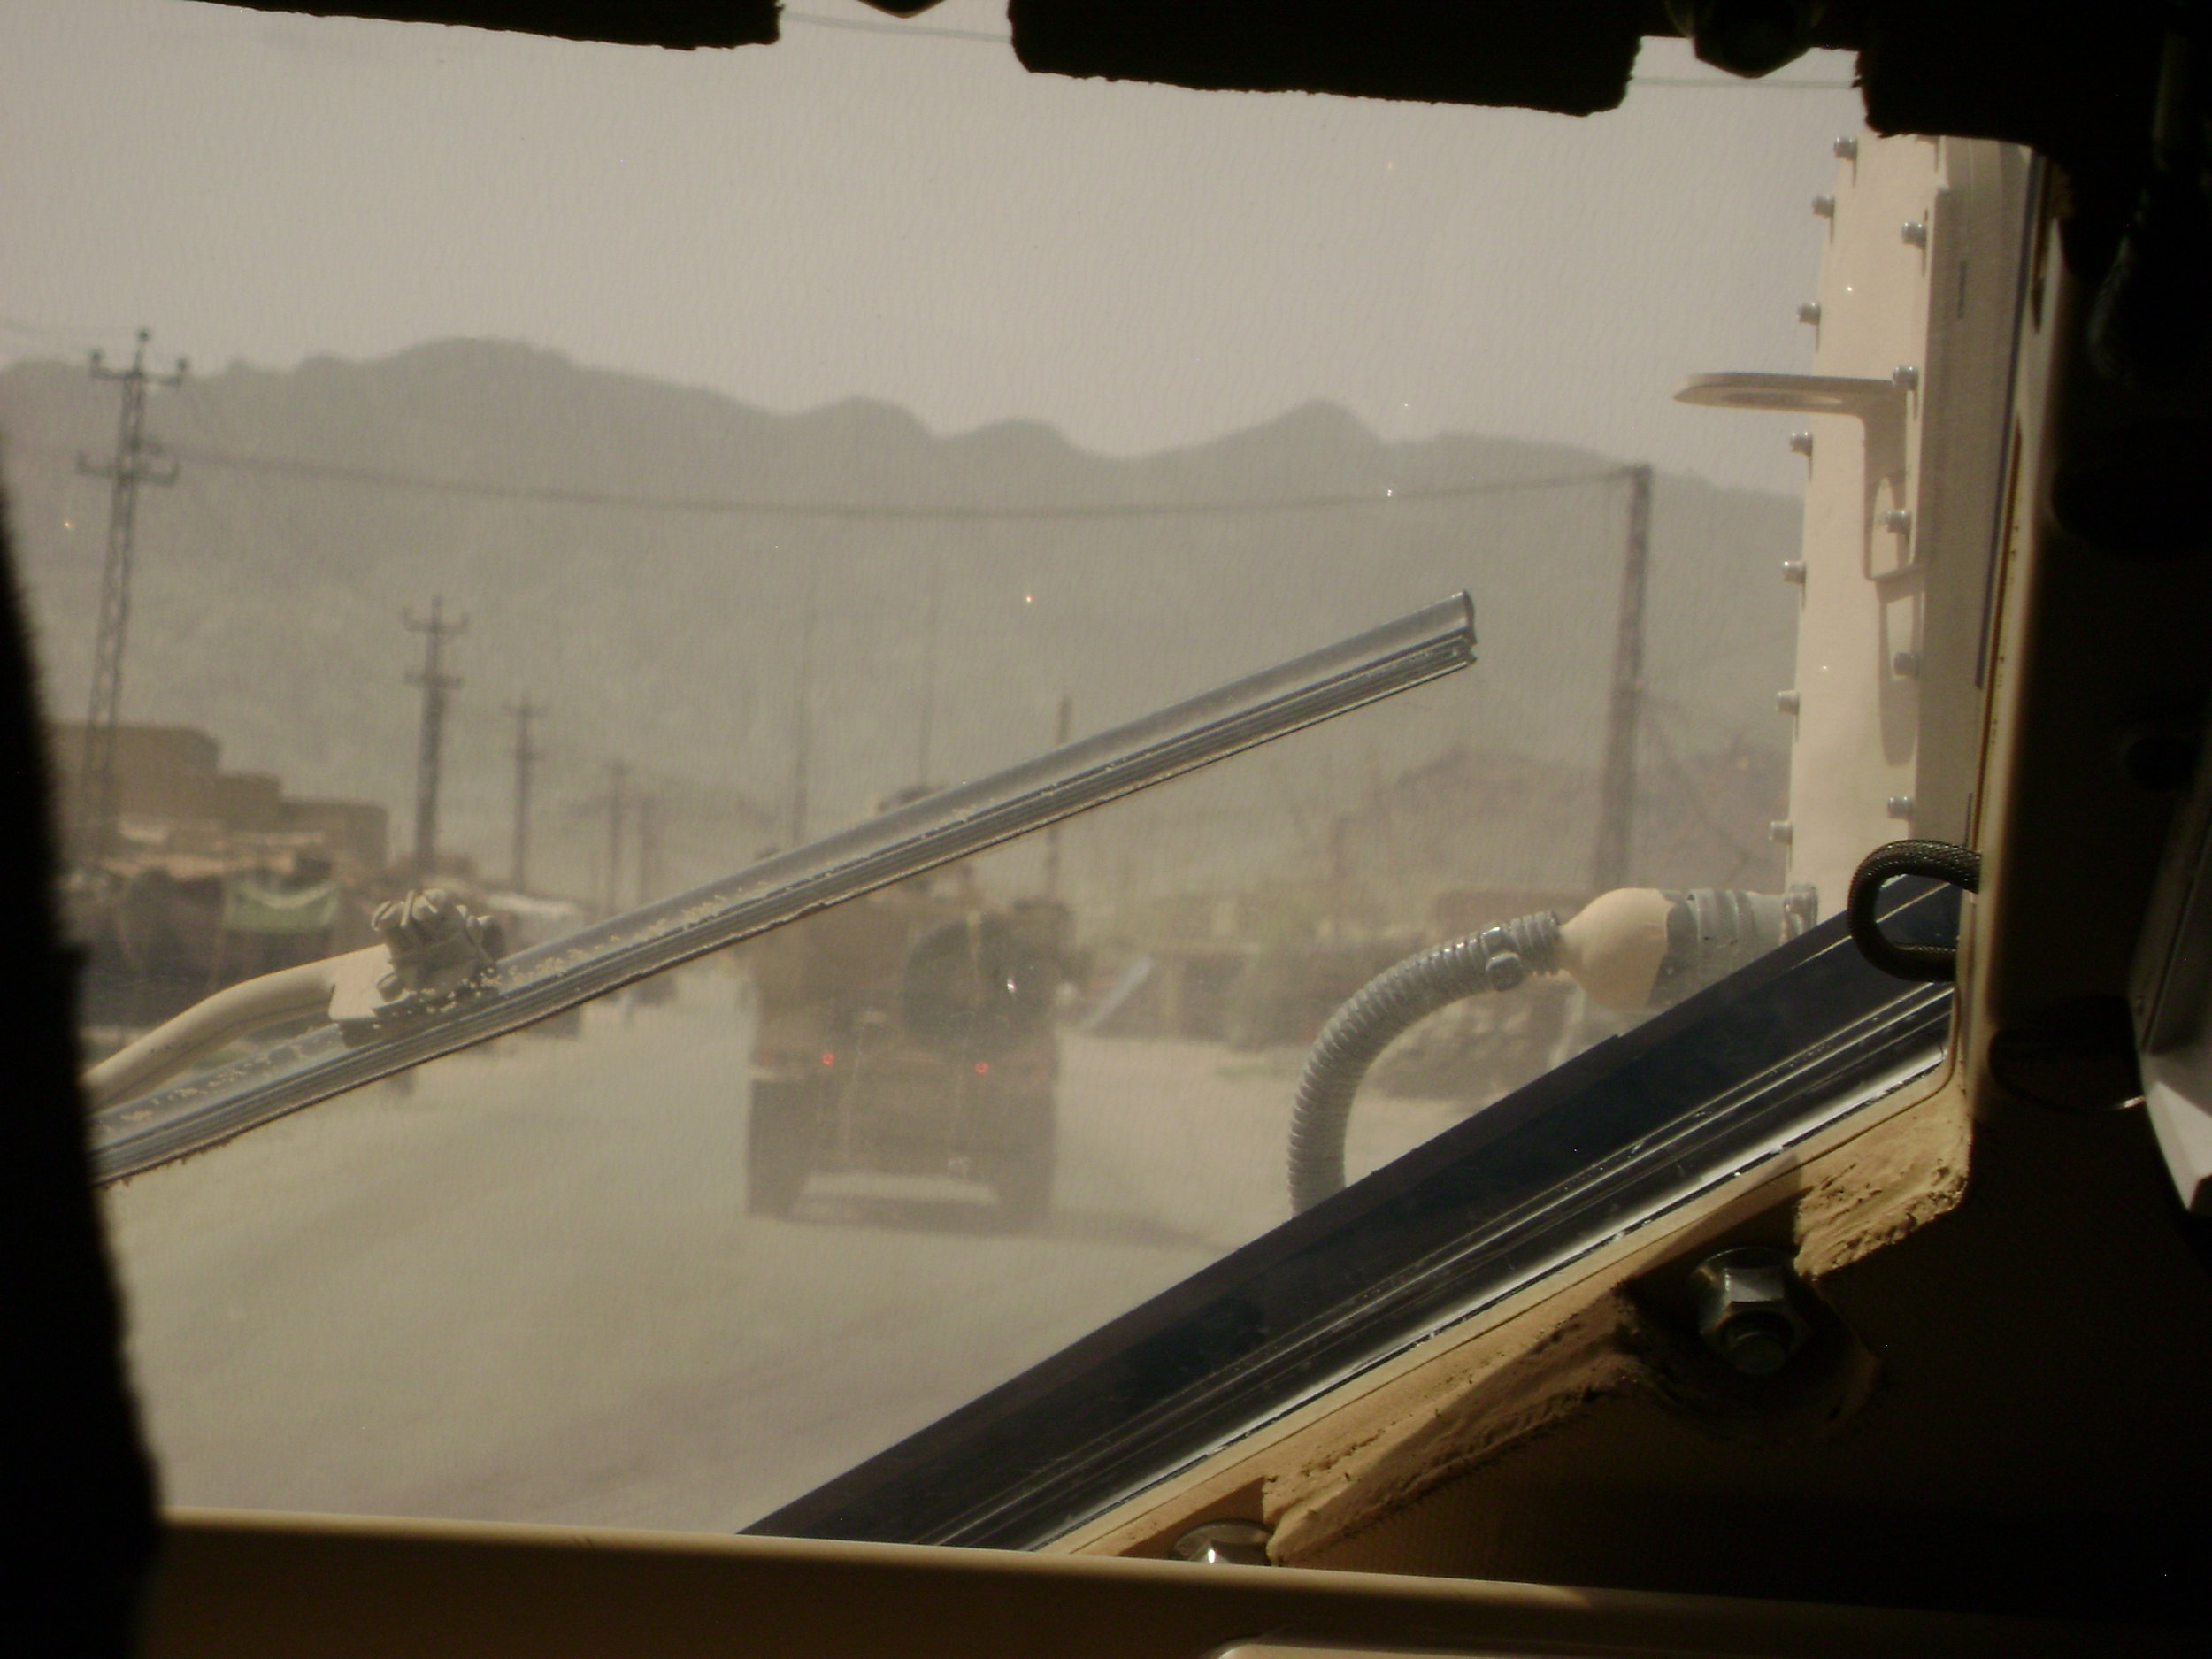 Afghanistan through the windshield of an armored vehicle, 2010.